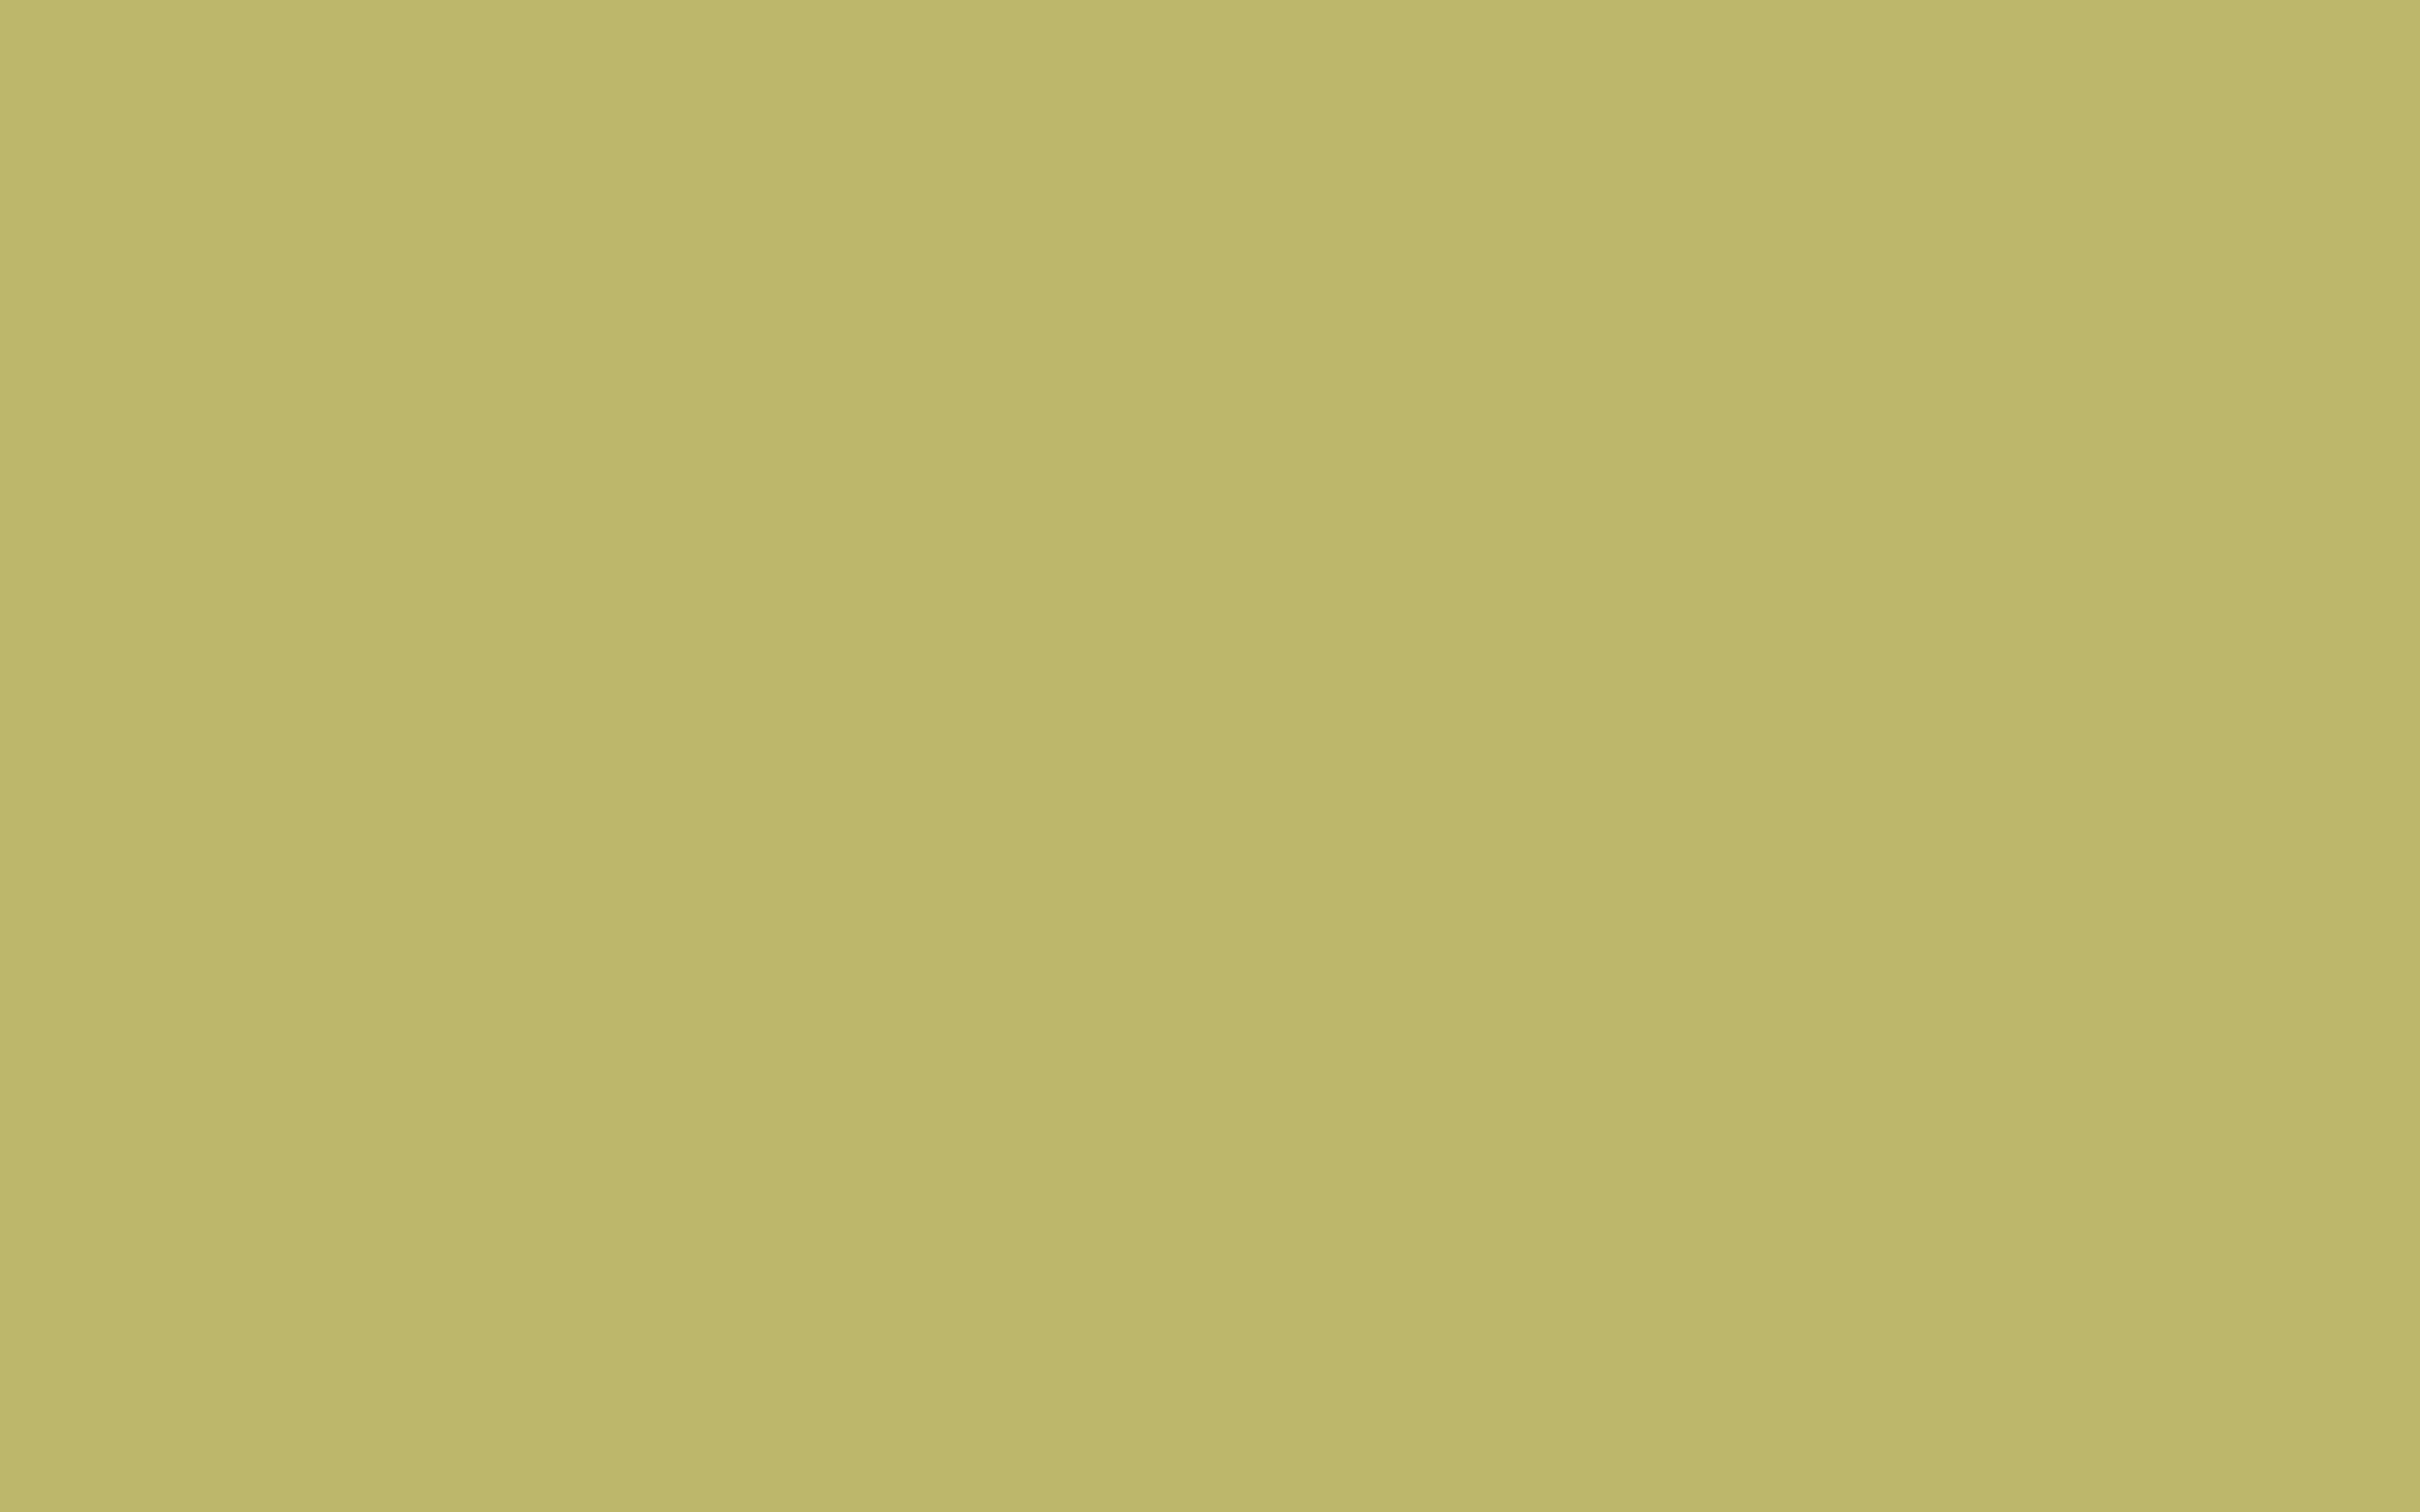 2560x1600 Dark Khaki Solid Color Background